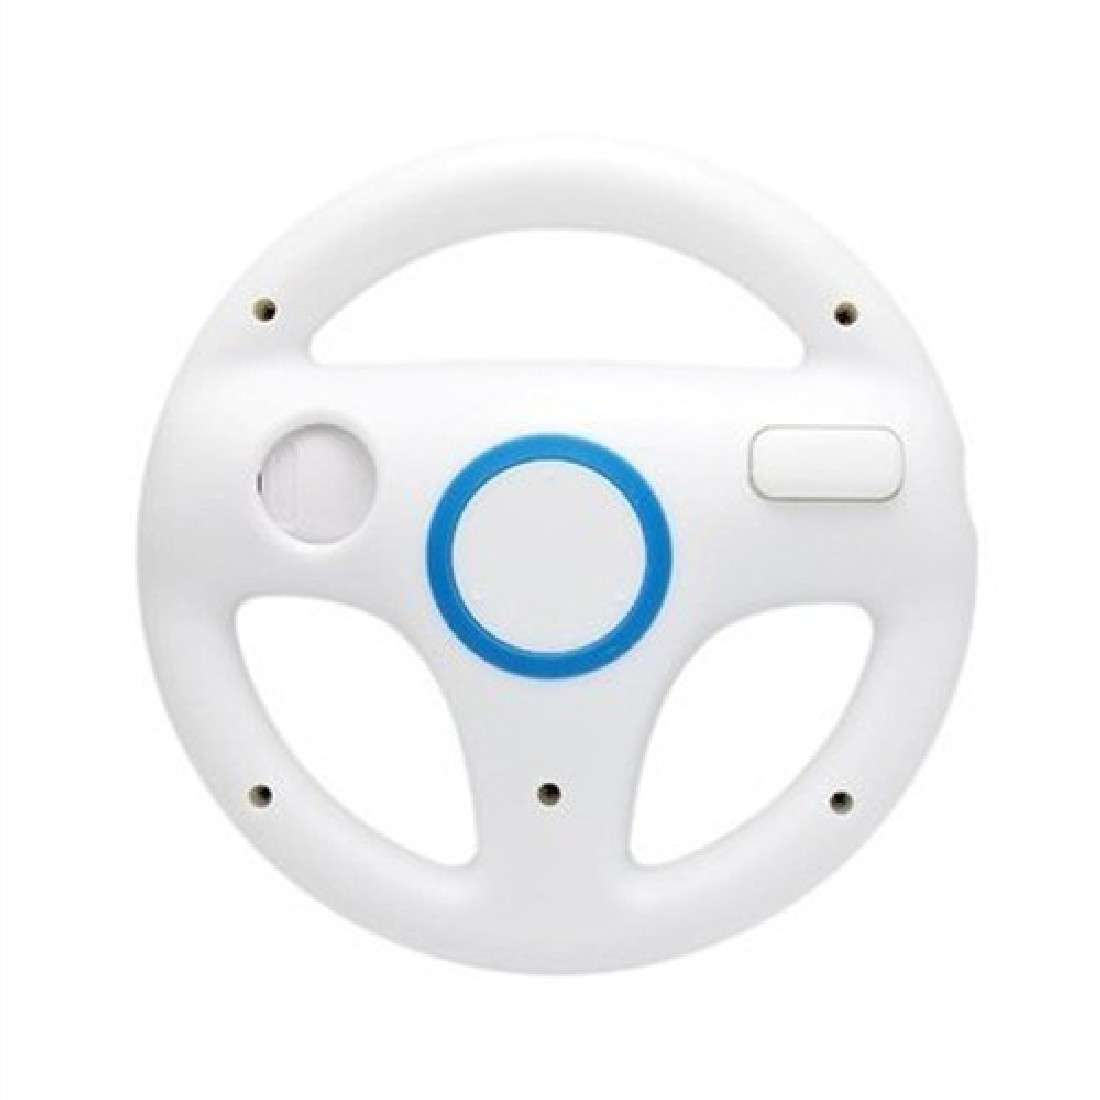 2016 high quality promotions steering wheel mario kart racing games remote controller for